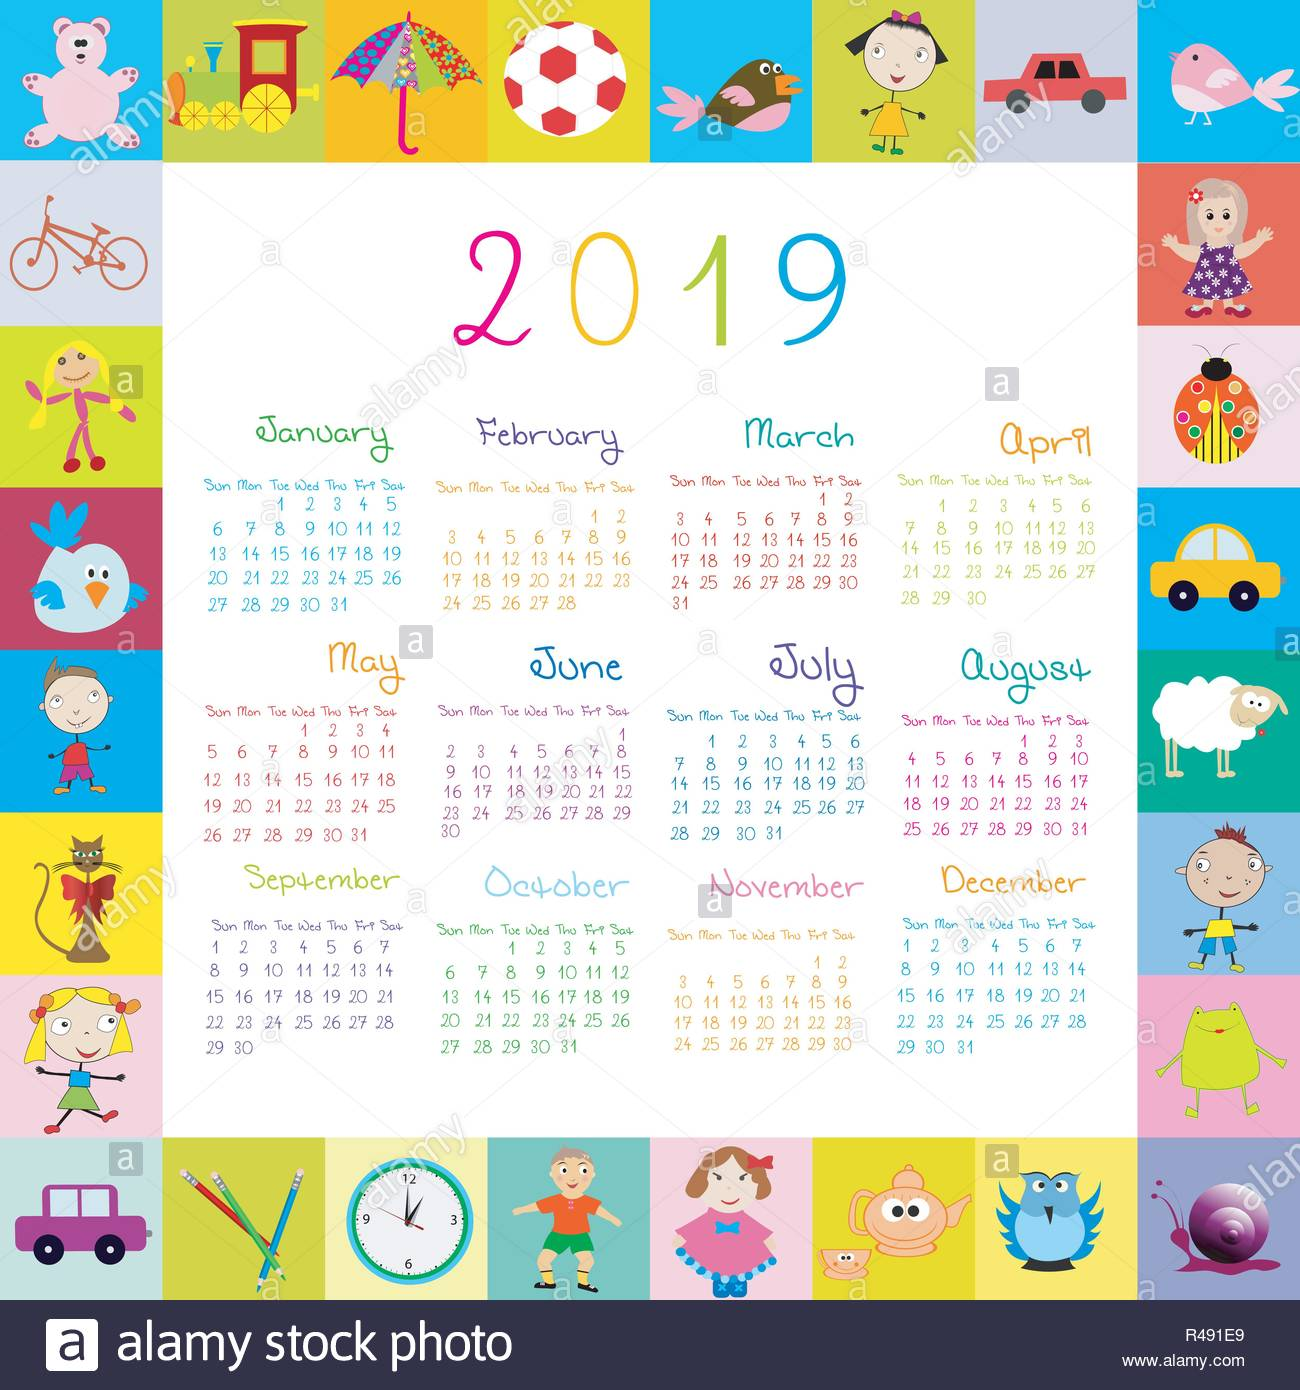 Calendario Para Kinder 2019.Frame With Toys 2019 Calandar For Kids Stock Vector Art